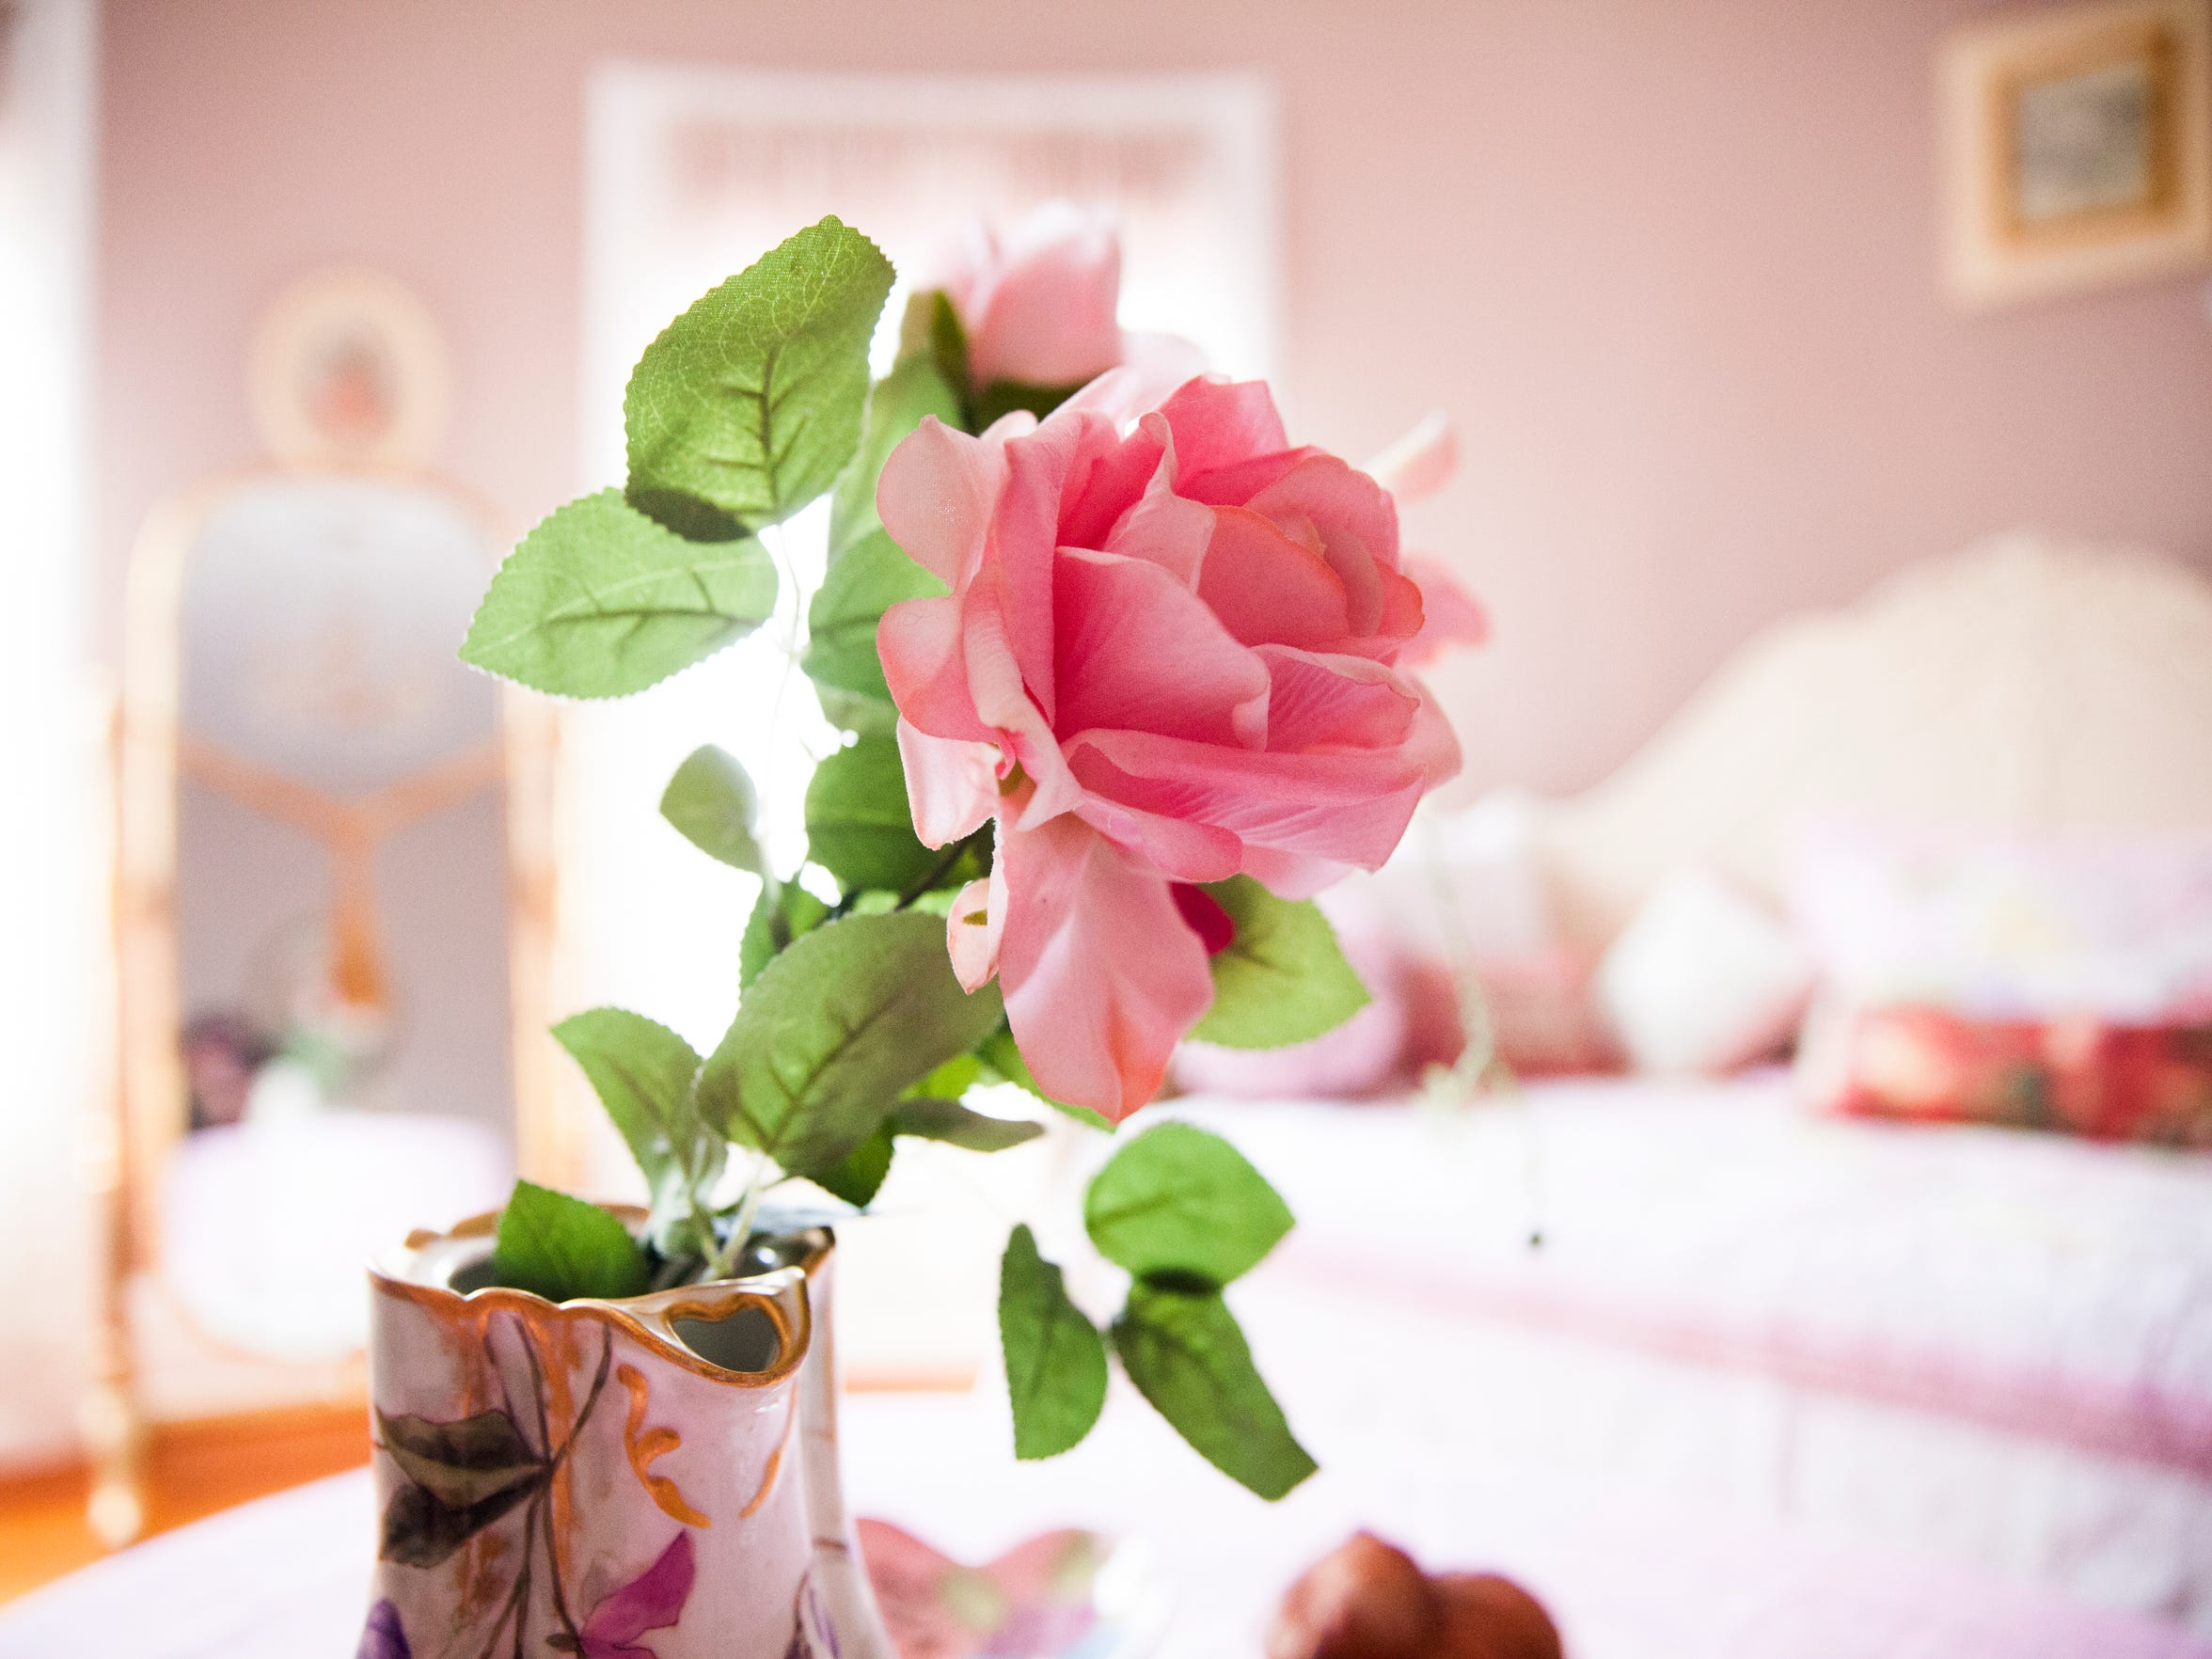 A rose sits inside one of the bedrooms at the Berkeley House Bed and Breakfast on Tuesday, March 24, 2015.